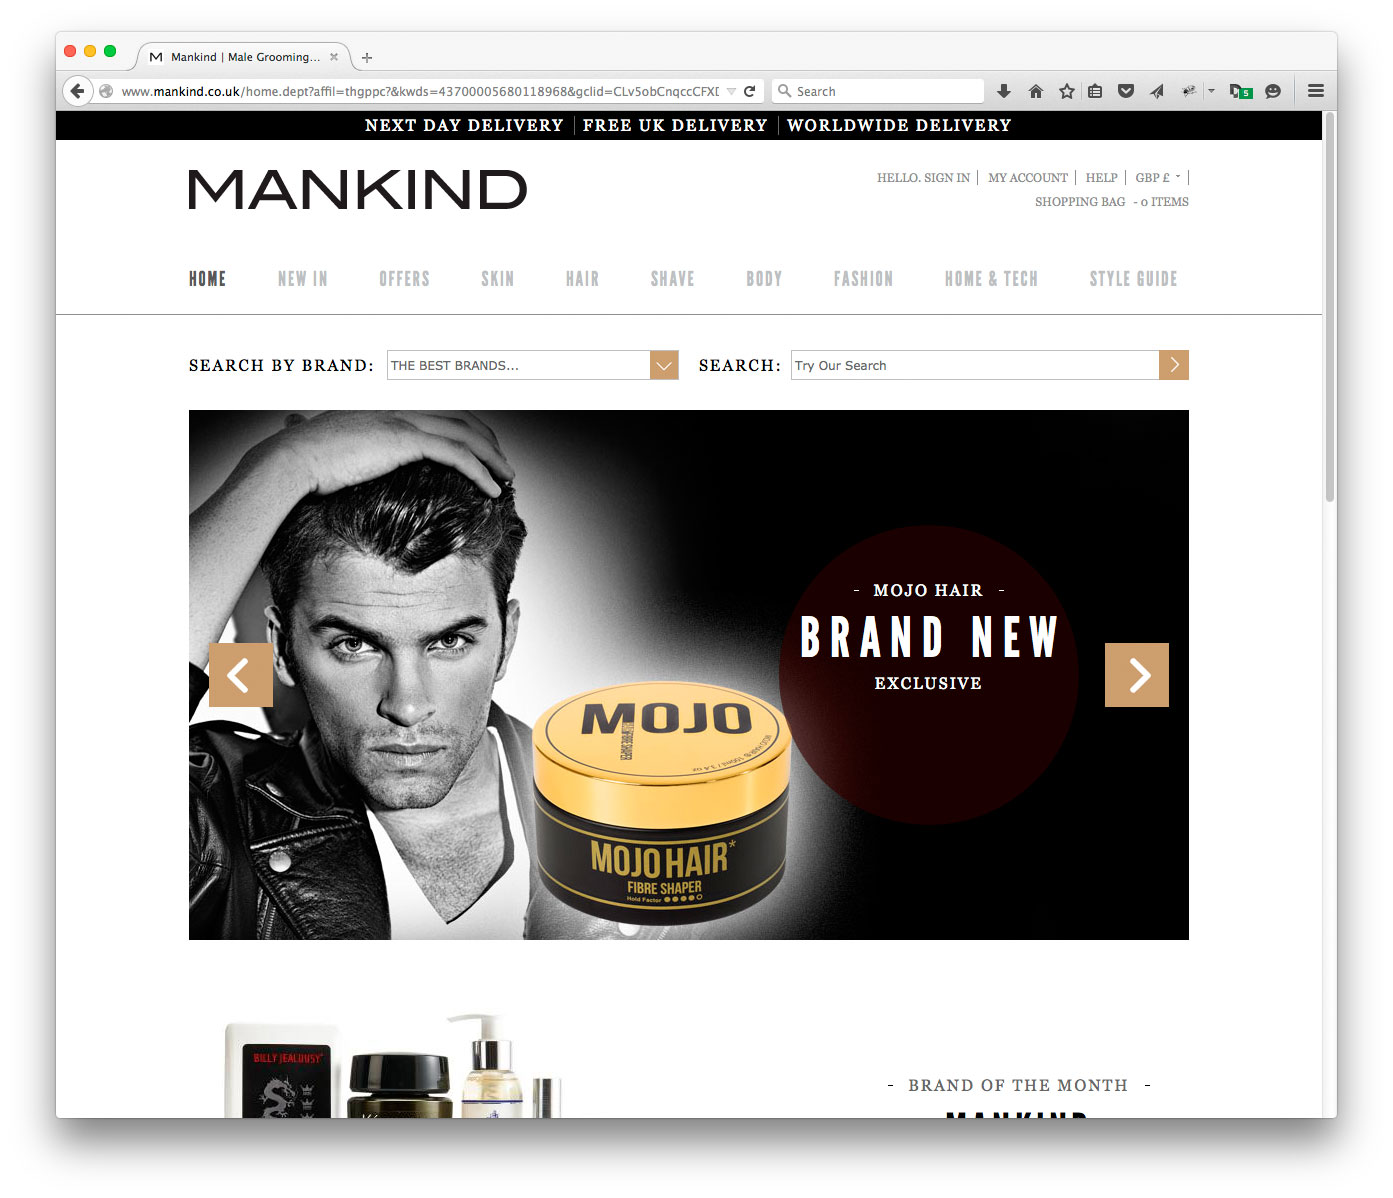 Mojo Hair* on Mankind